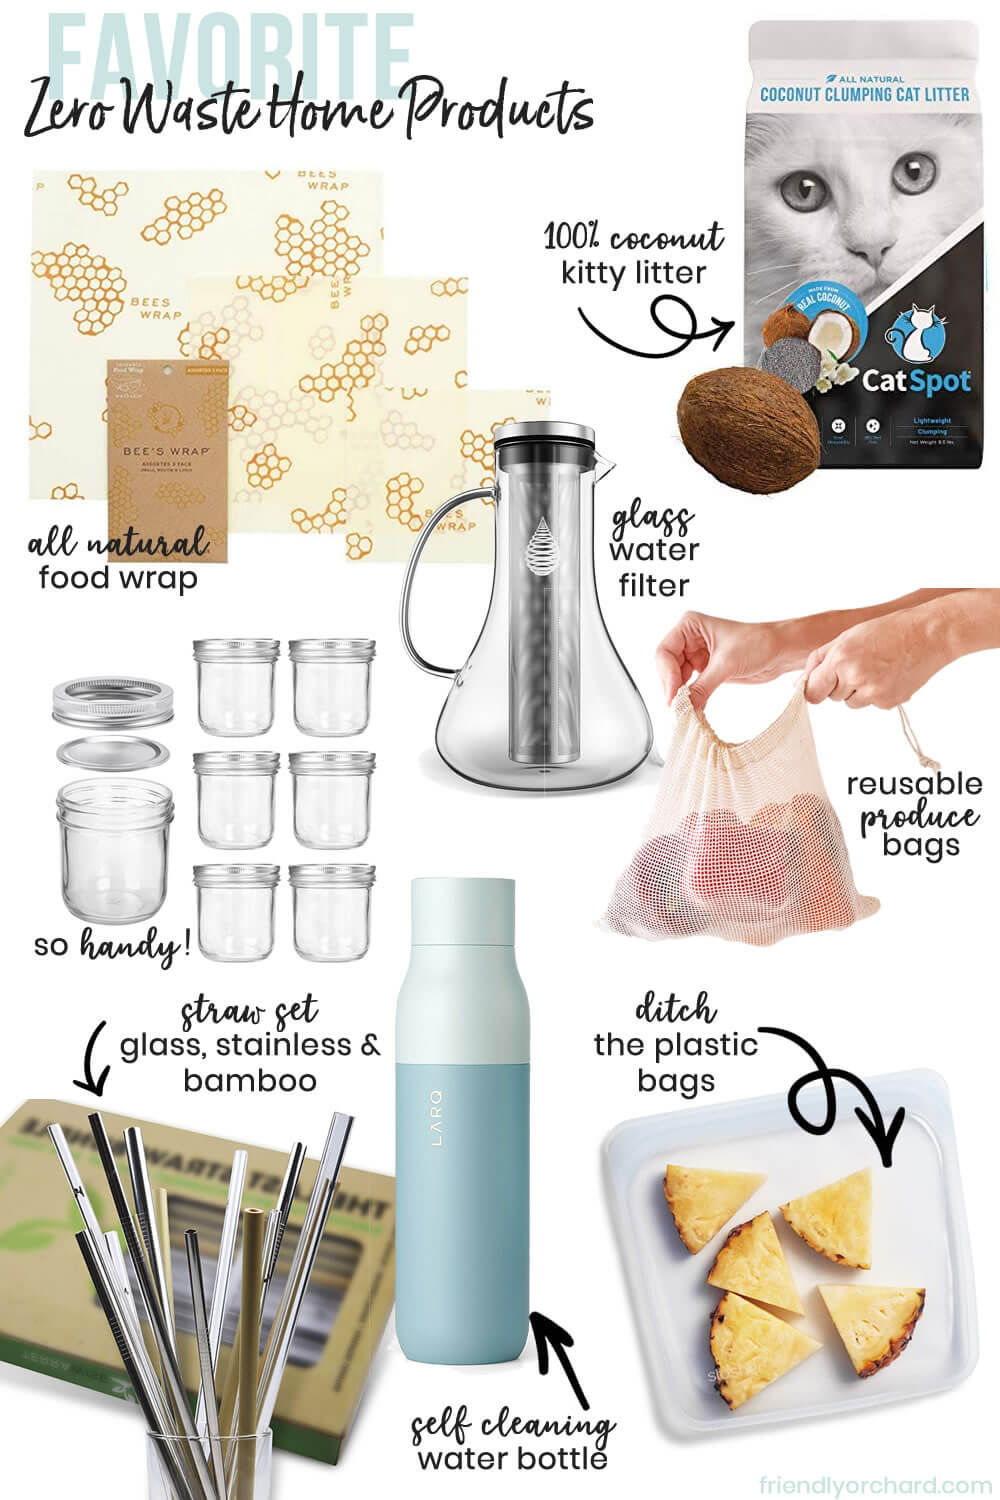 Zero Waste Home Products | Friendly Orchard